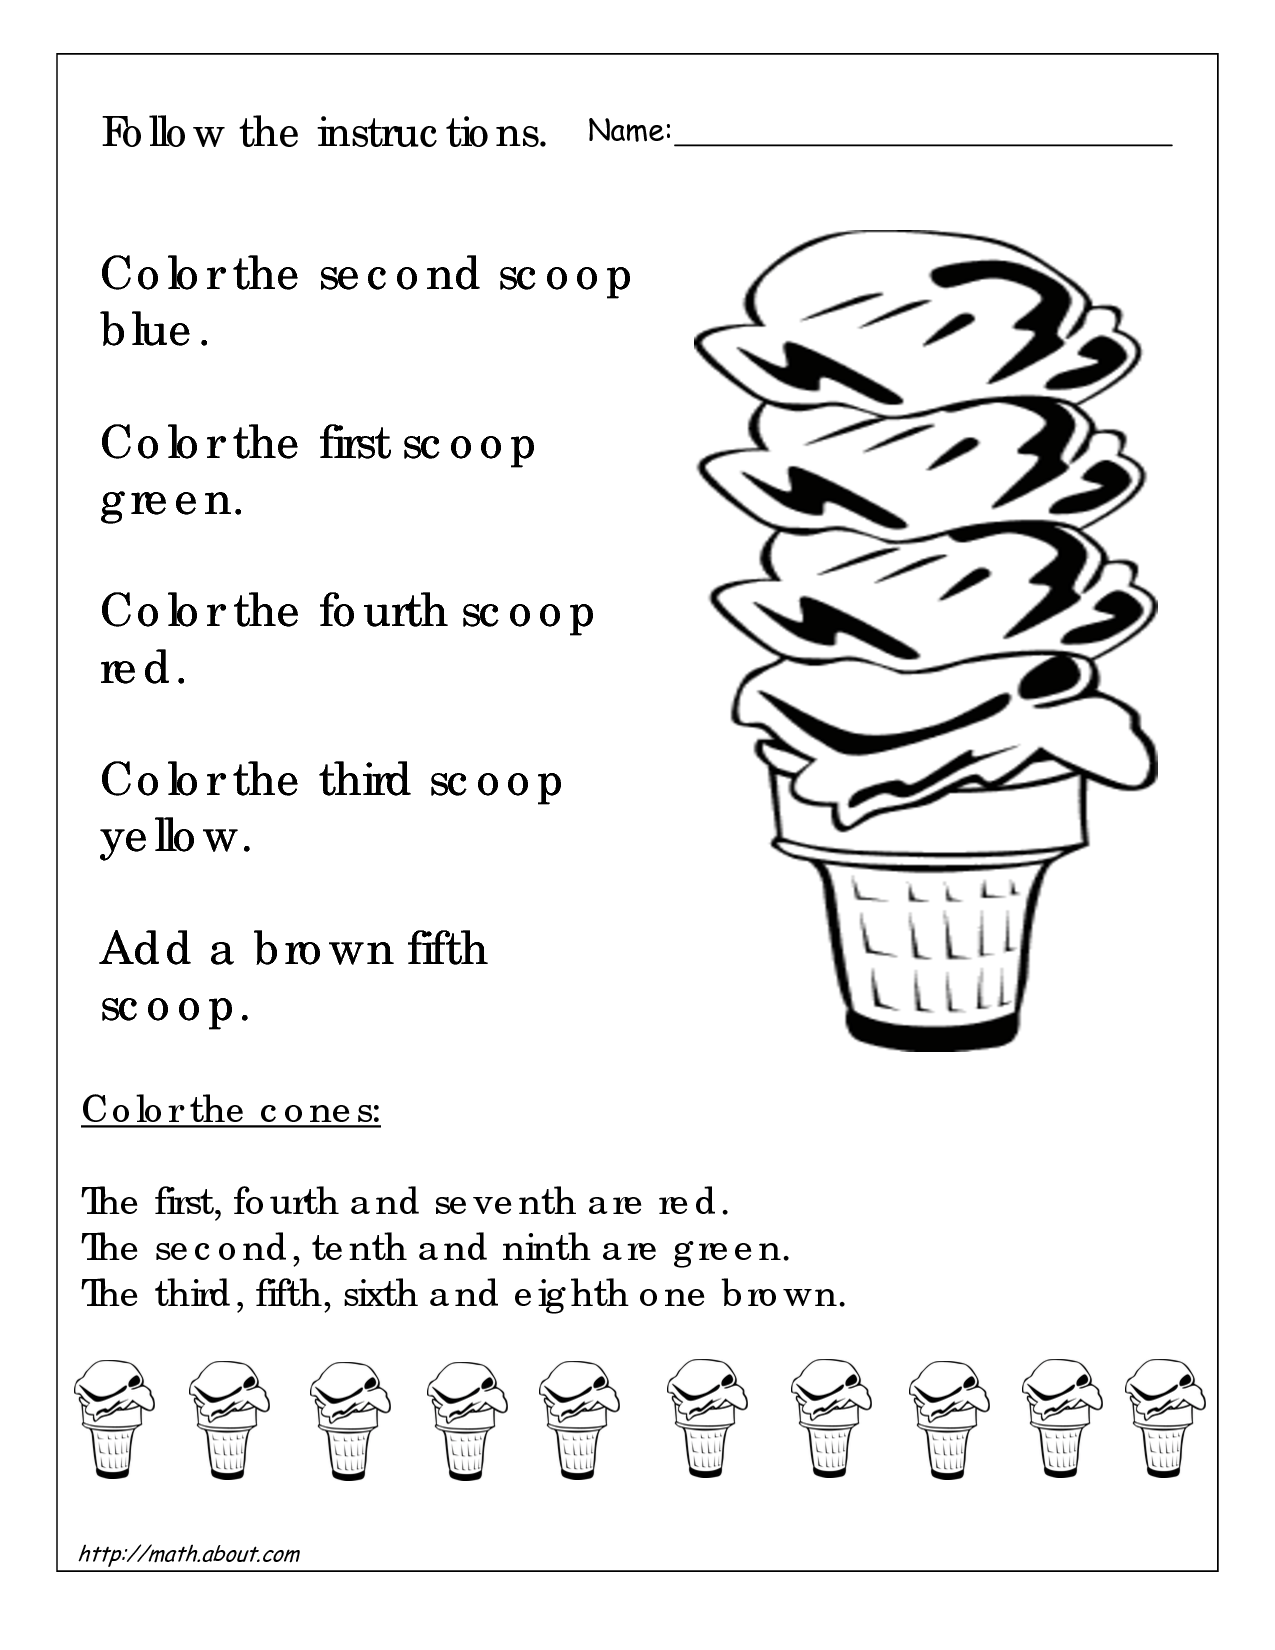 Worksheets Math Worksheets 3rd Grade Printable math worksheets for 3rd graders 1st grade printable students